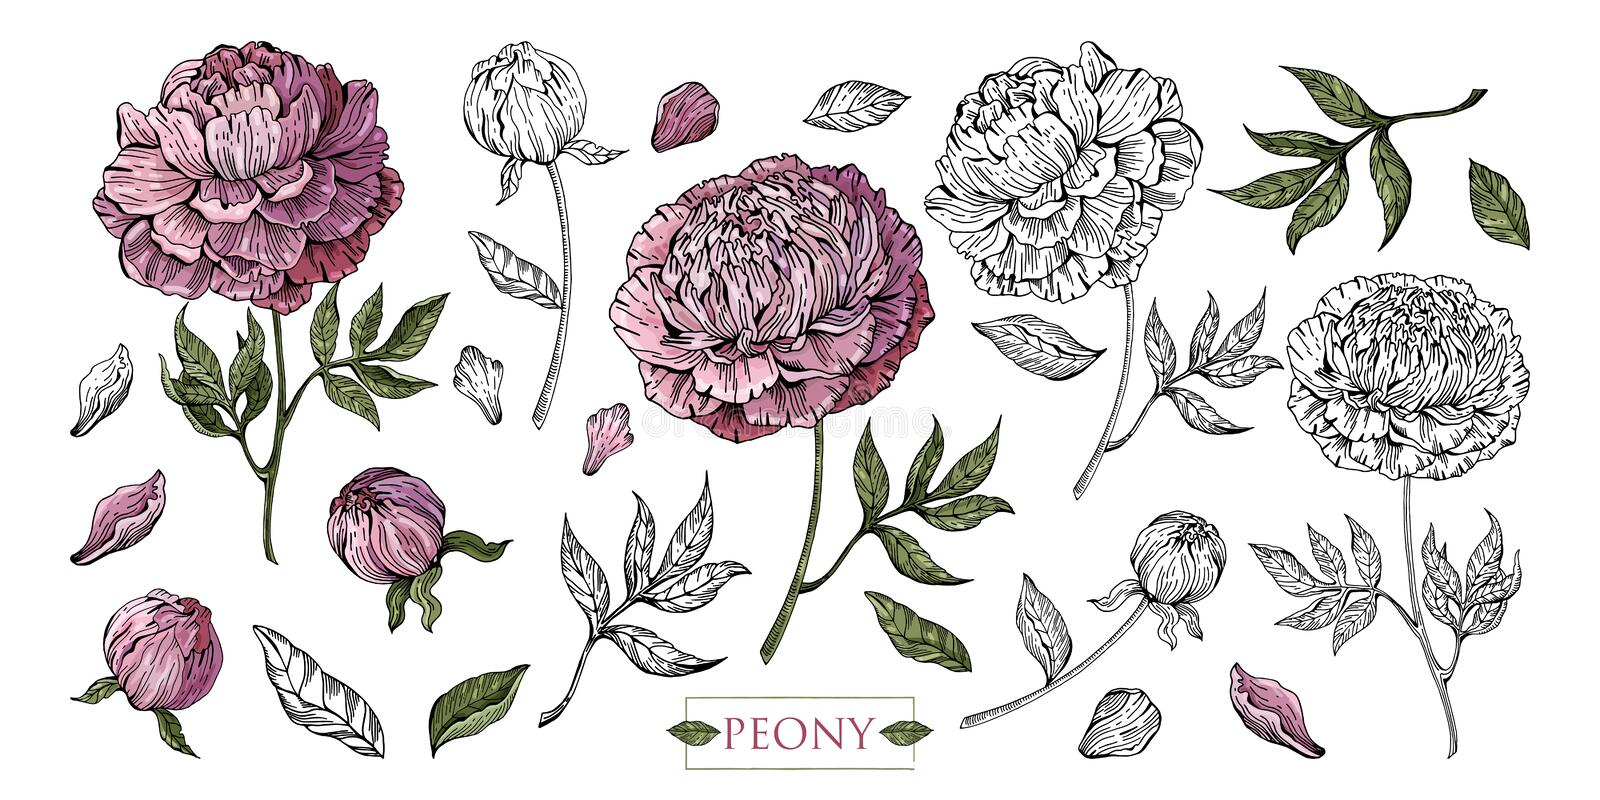 Large set of Botanical illustration. Peony flowers, leaves, stems, buds hand drawn in color and in black and white line. Romantic. Floral elements. Isolated royalty free illustration